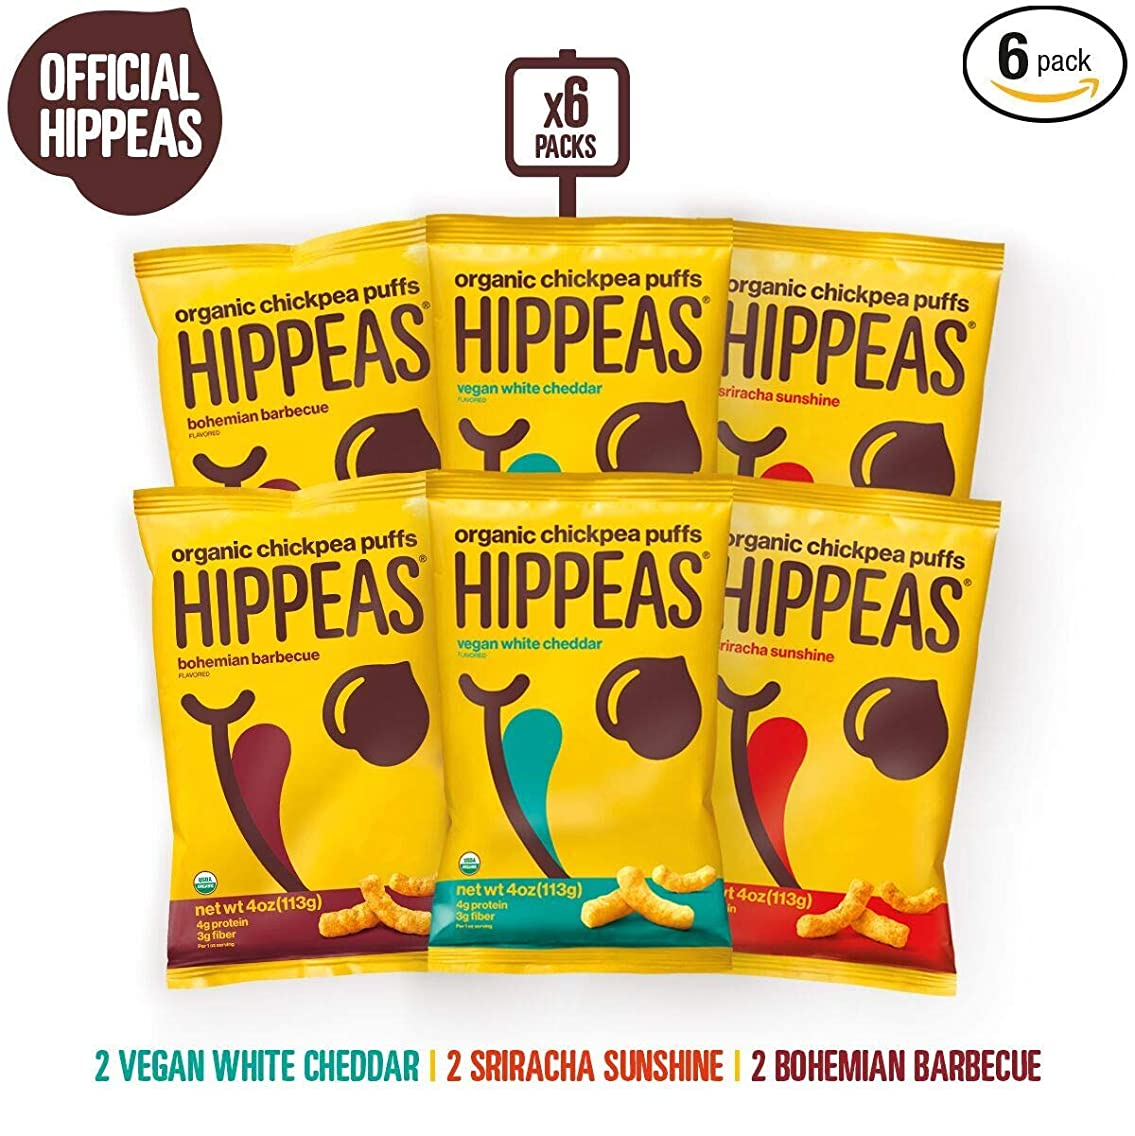 HIPPEAS Organic Chickpea Puffs + Variety Pack | 4 ounce, 6 count | Vegan, Gluten-Free, Crunchy, Protein Snacks